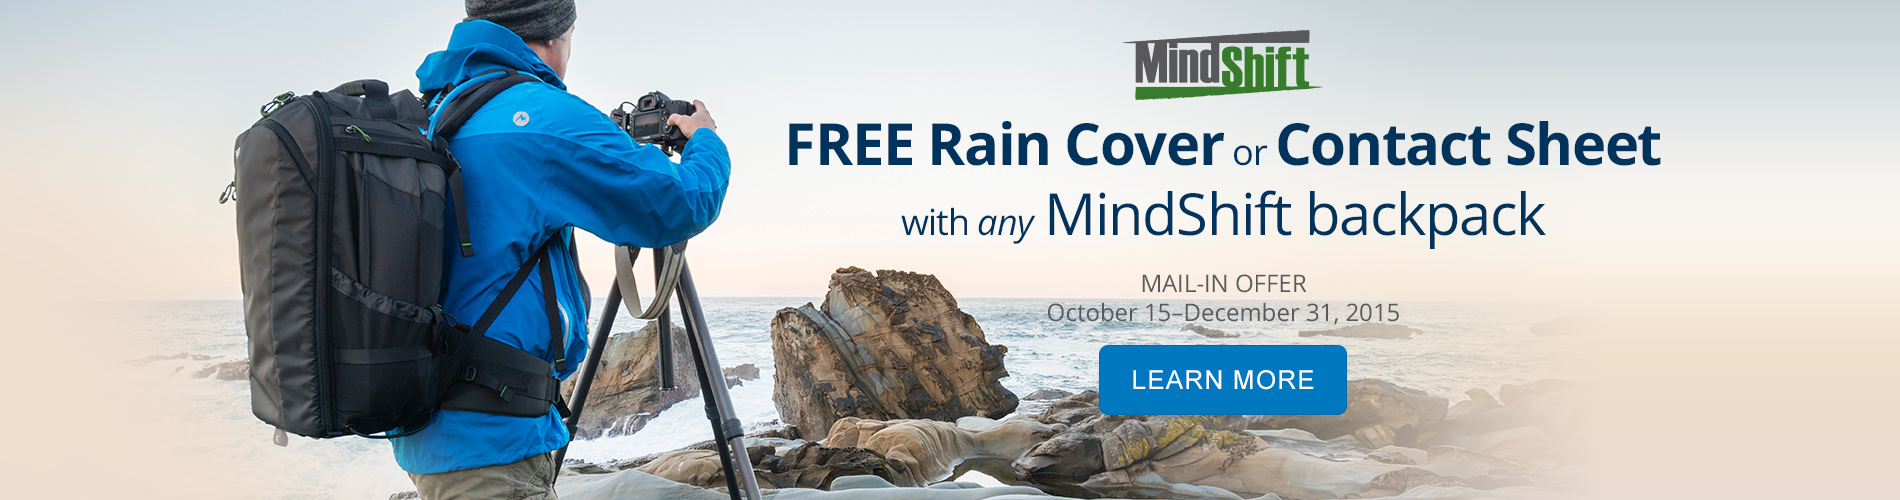 Get a FREE Rain Cover or Contact Sheet with any MindShift backpack via mail-in offer. October 15-December 31, 2015. Learn More.